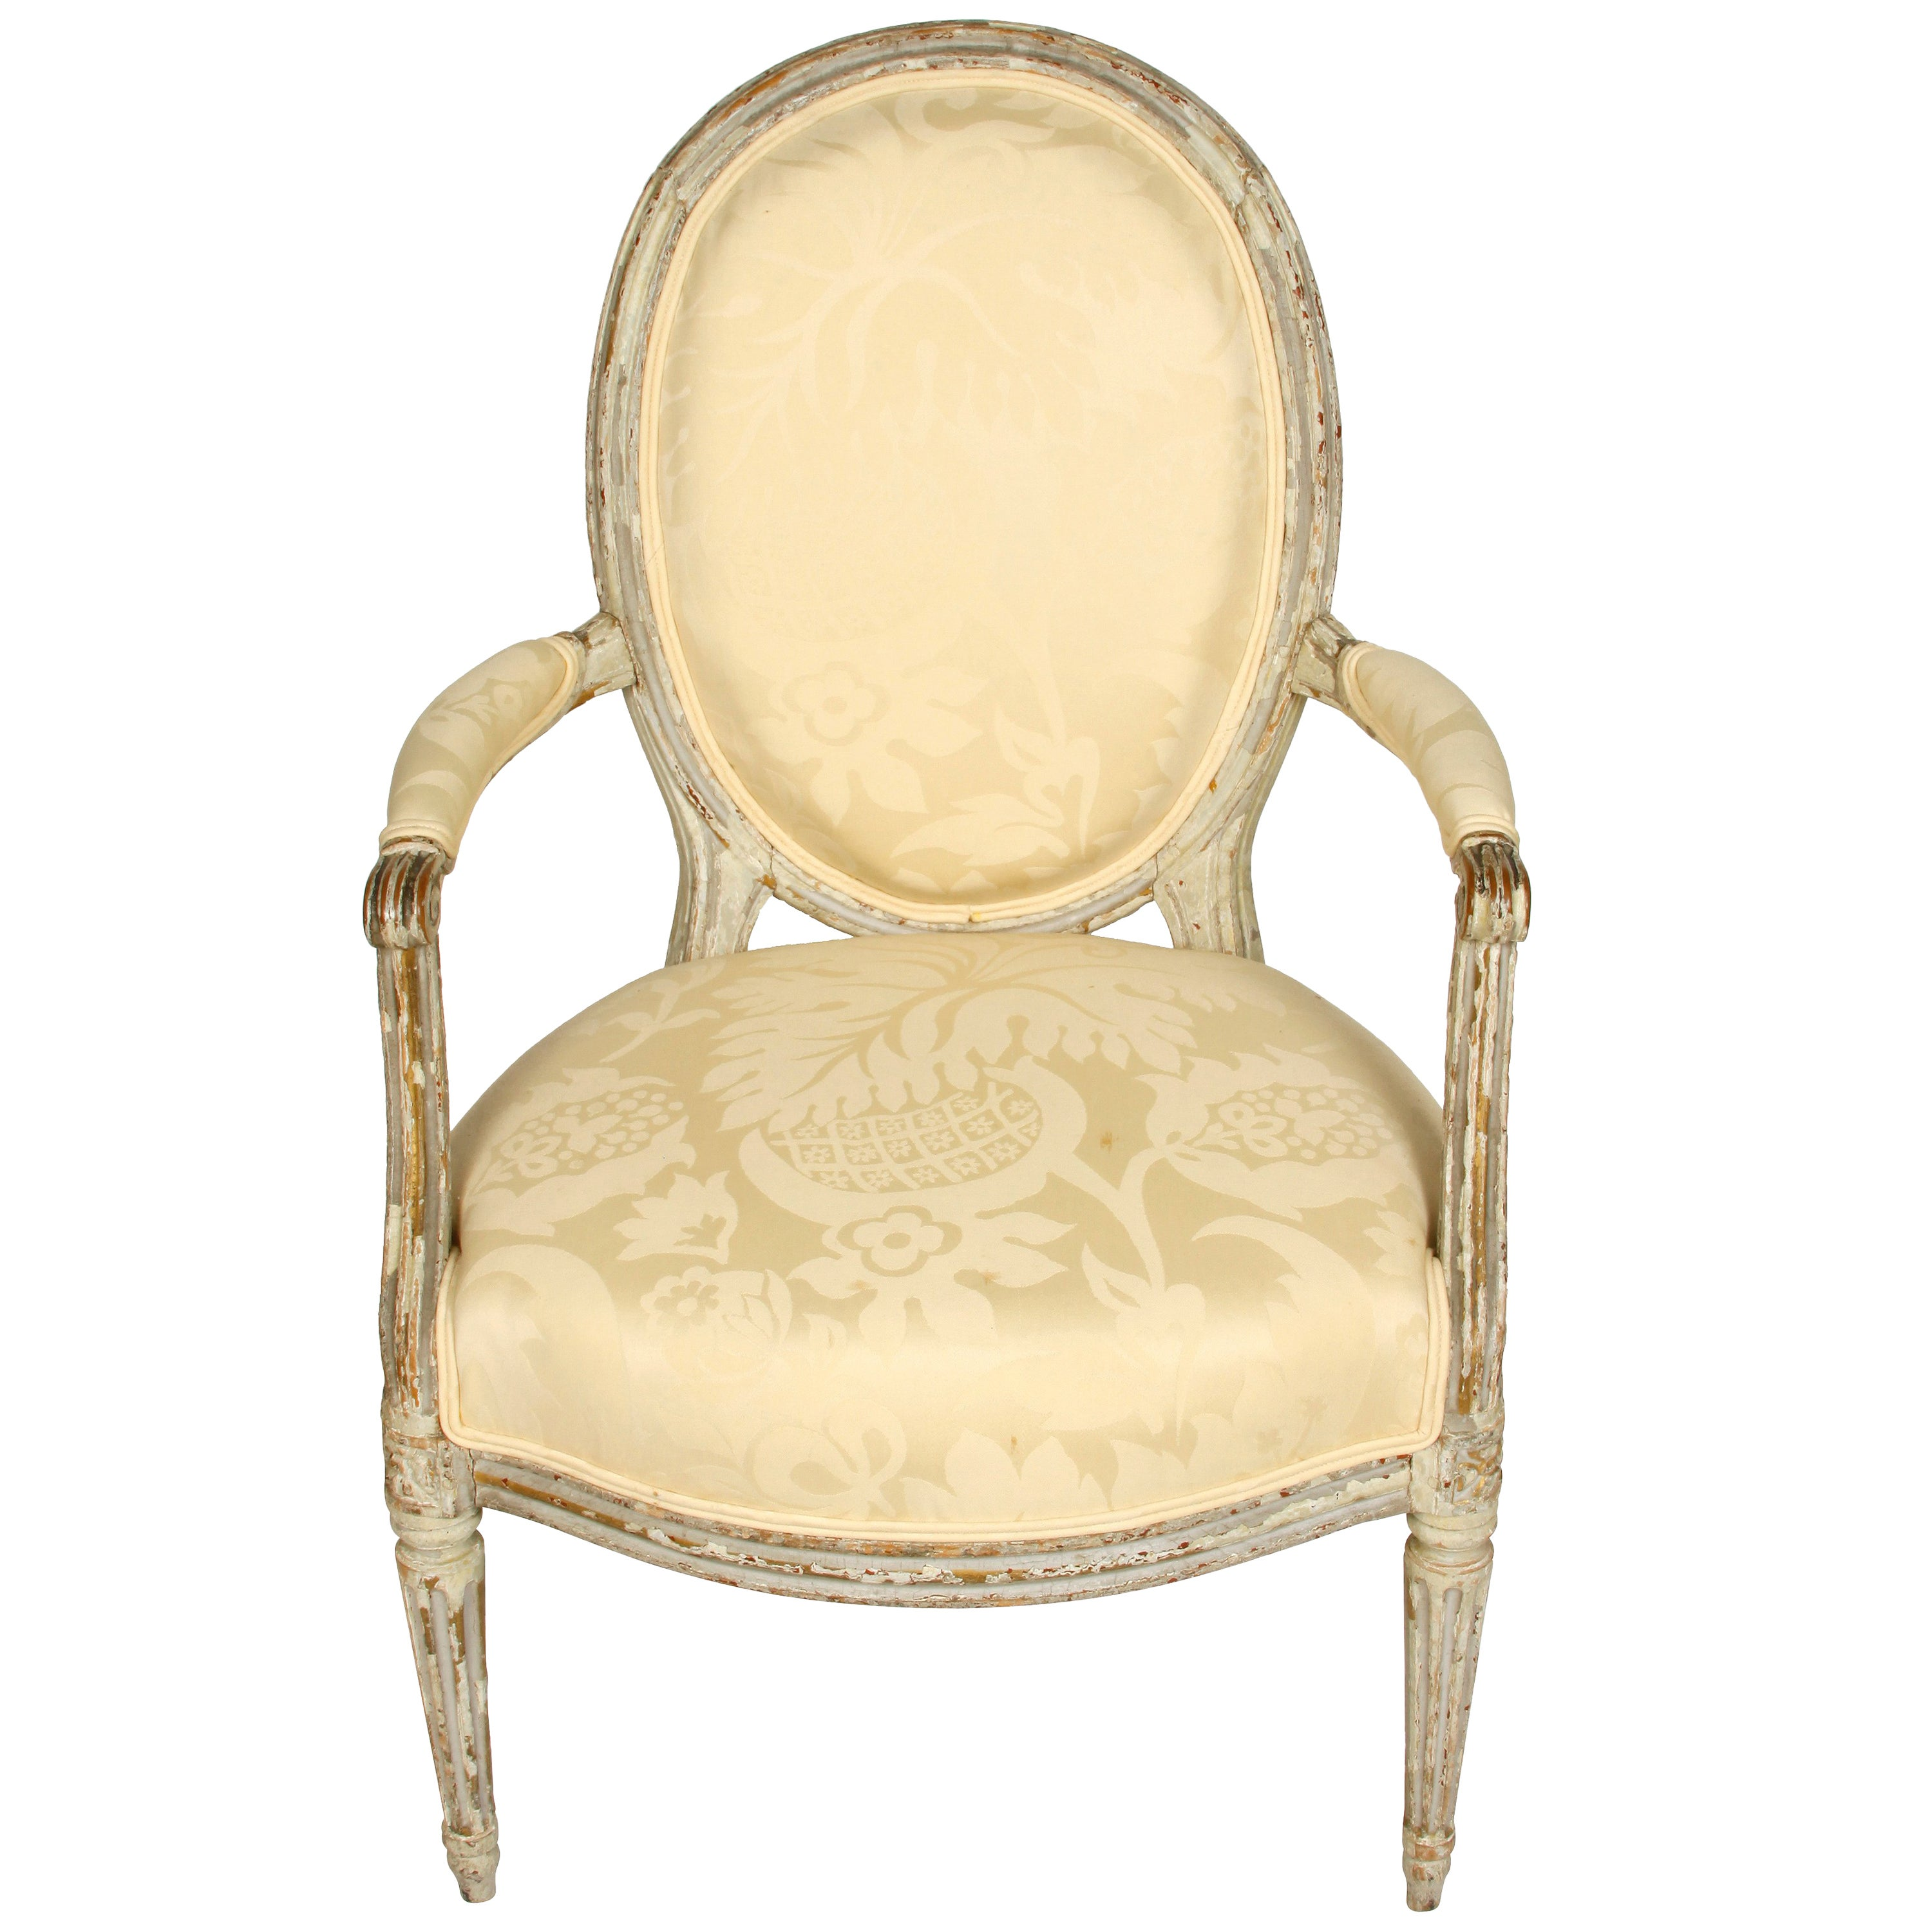 Louis XVI Style Painted Fauteuil with Oval Back